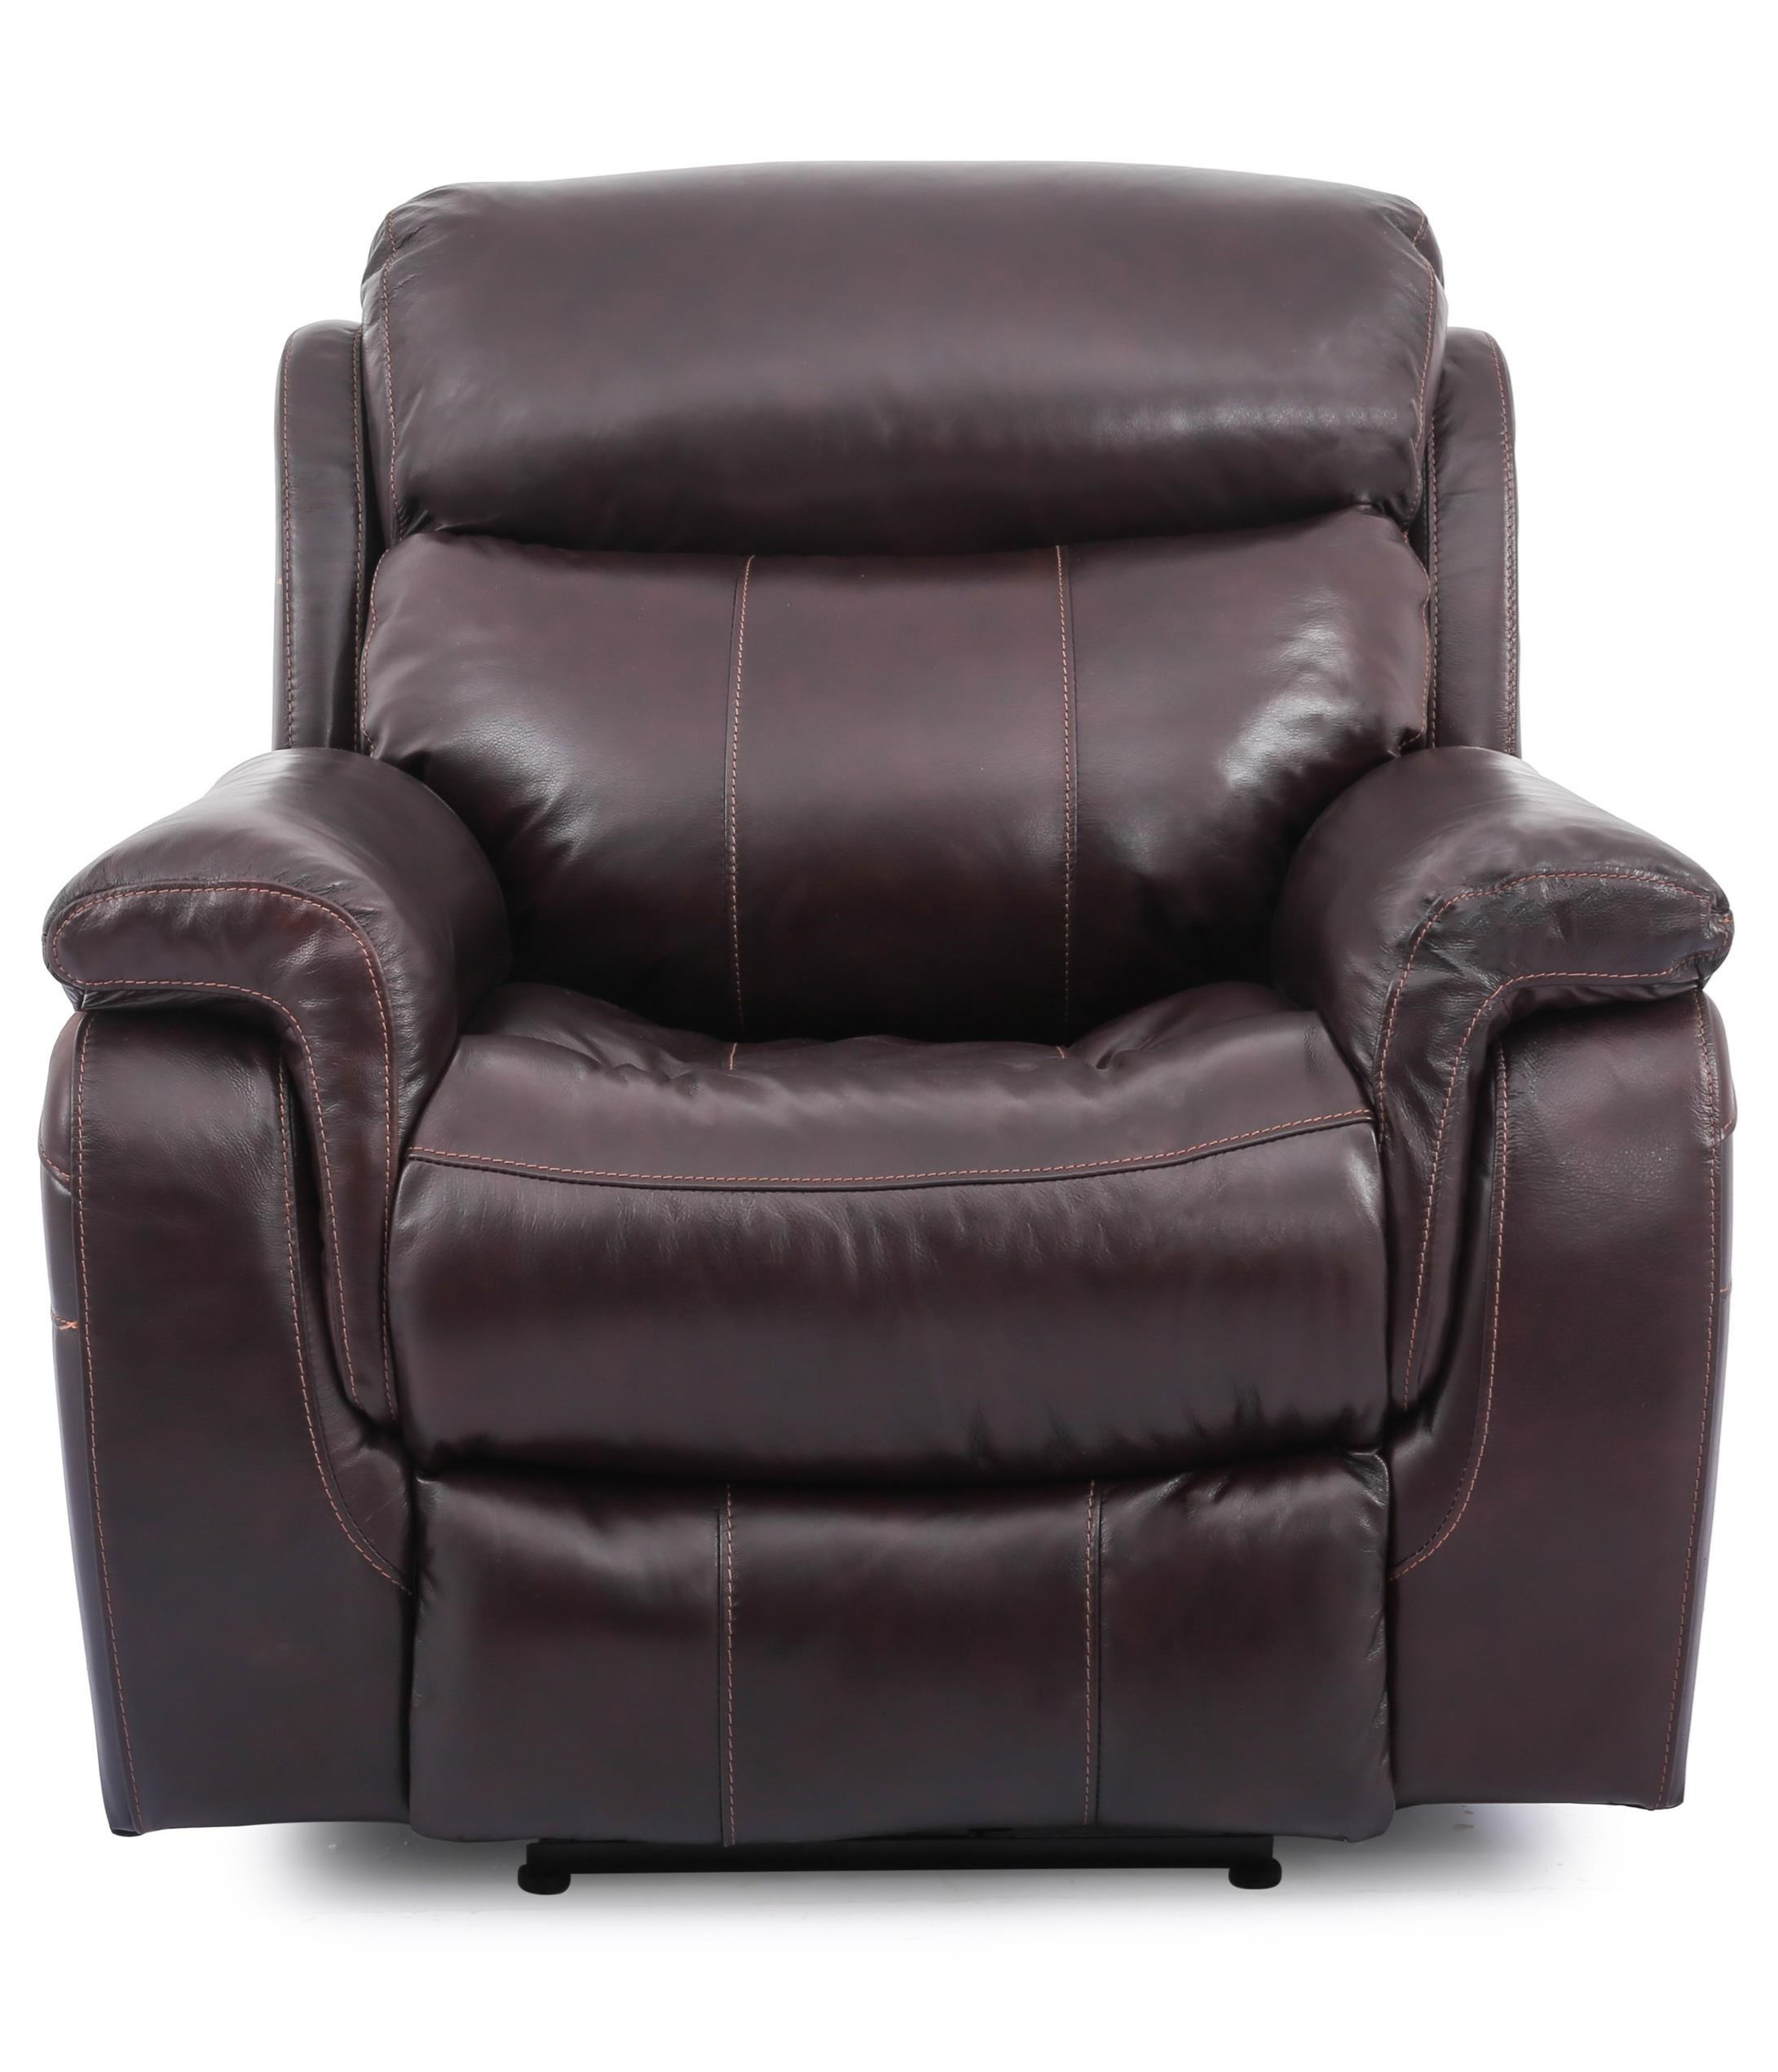 Cheers Sofa 9020 Power Recliner with Power Headrest - Item Number: 9020-L1-1EH 2543